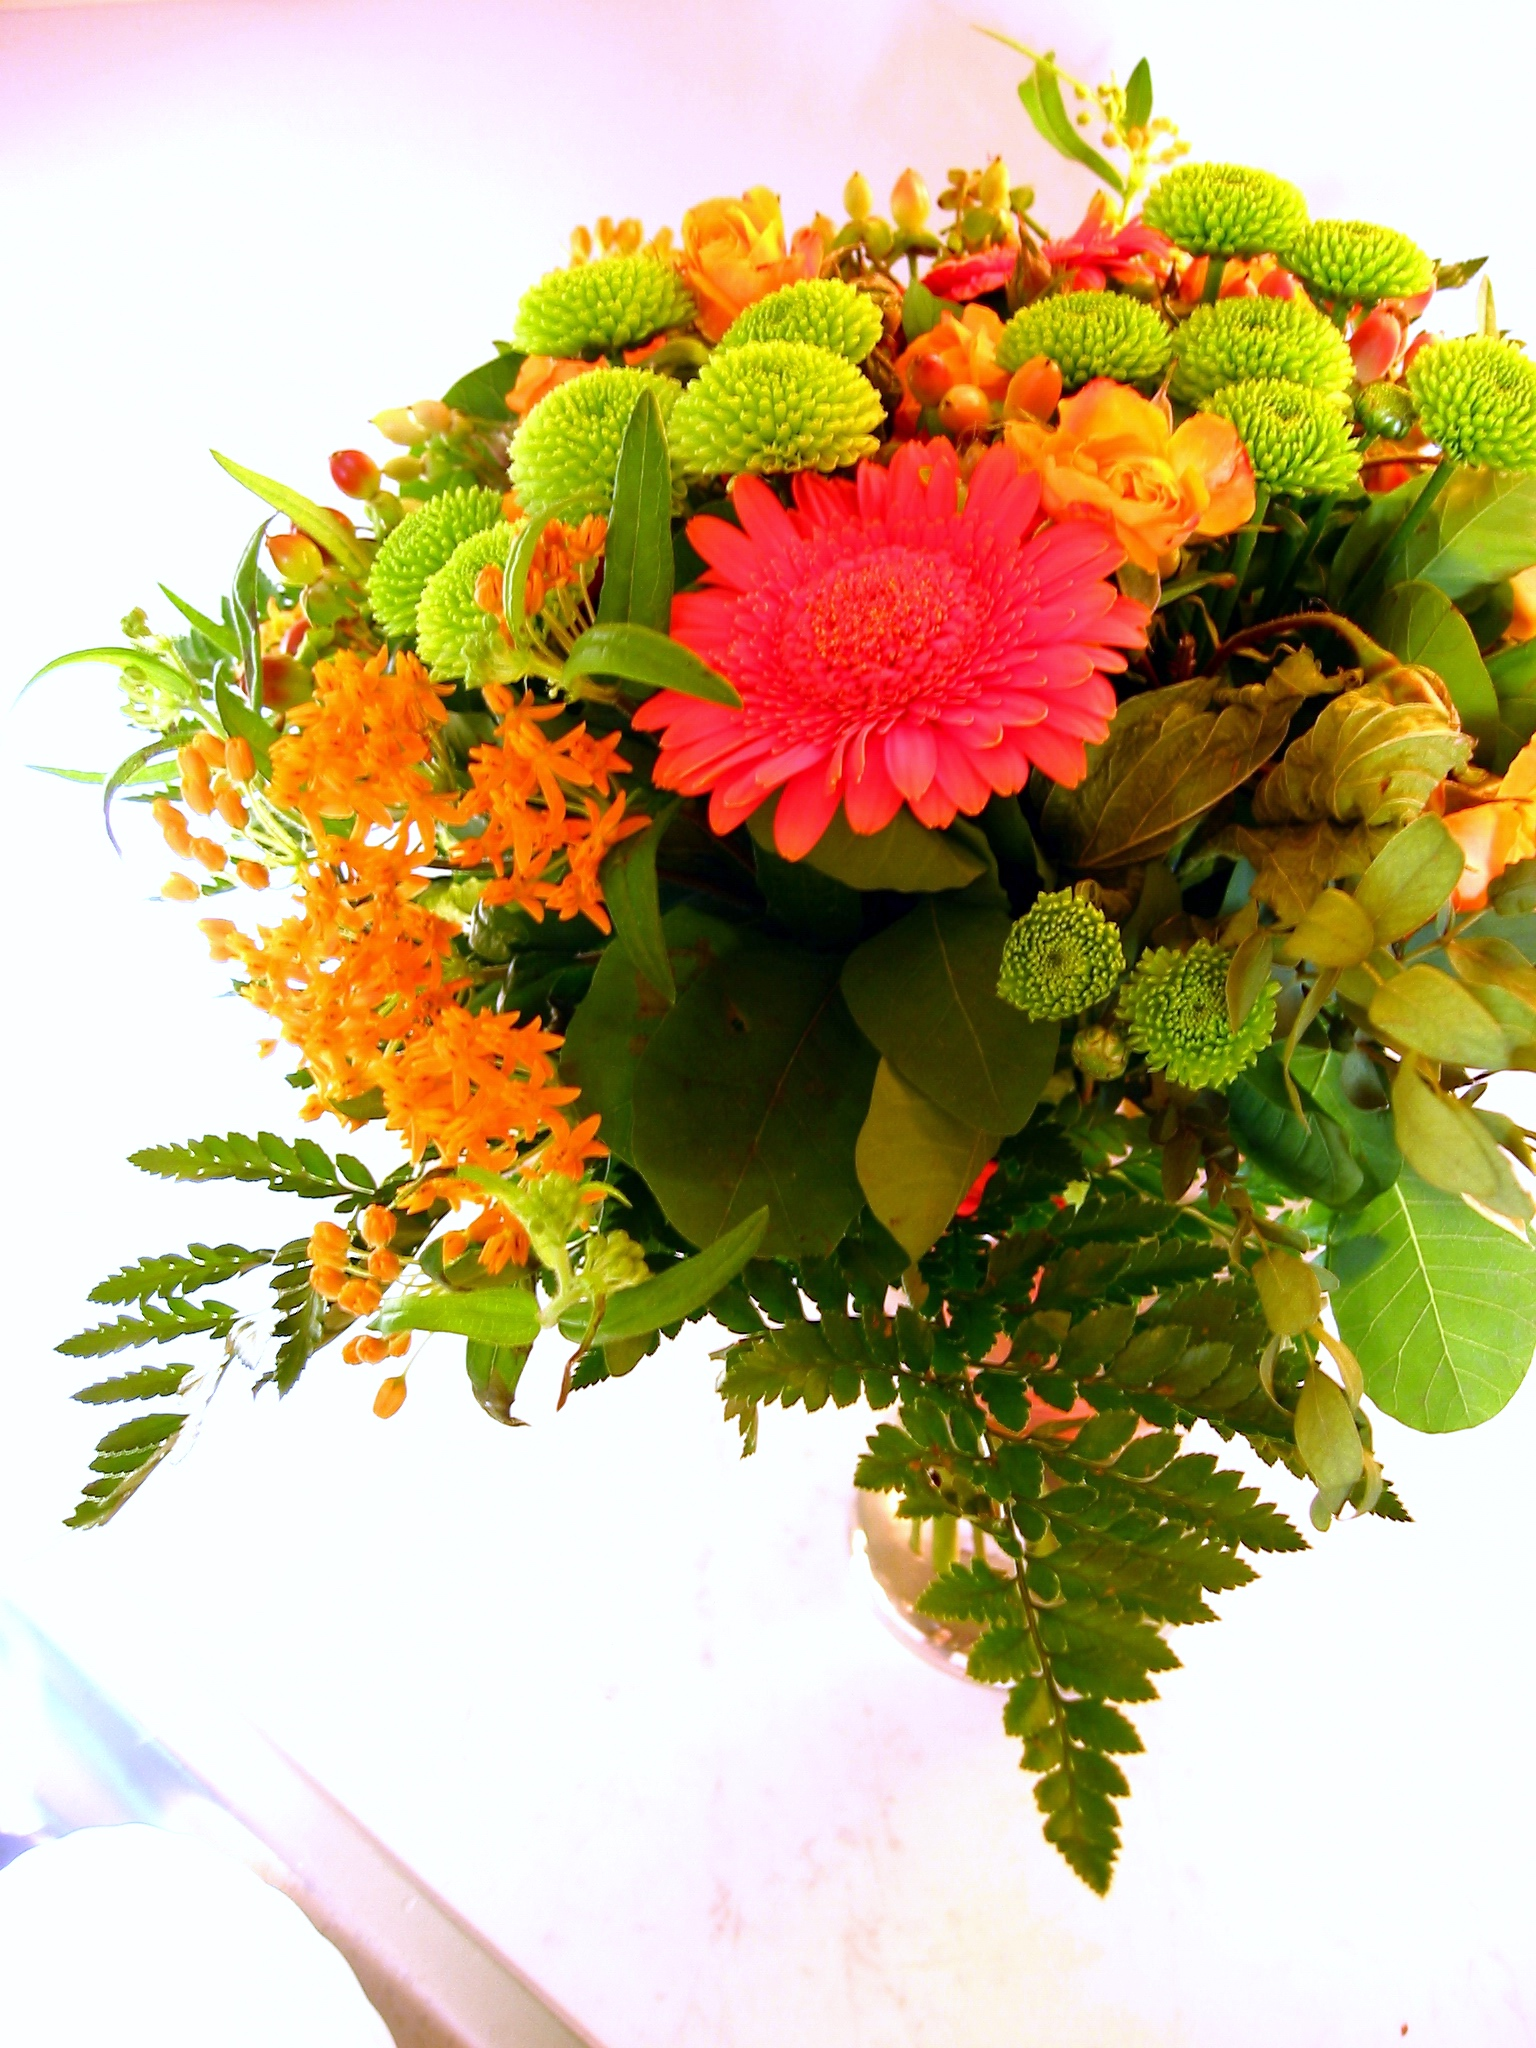 What can shorten the life of cut flowers